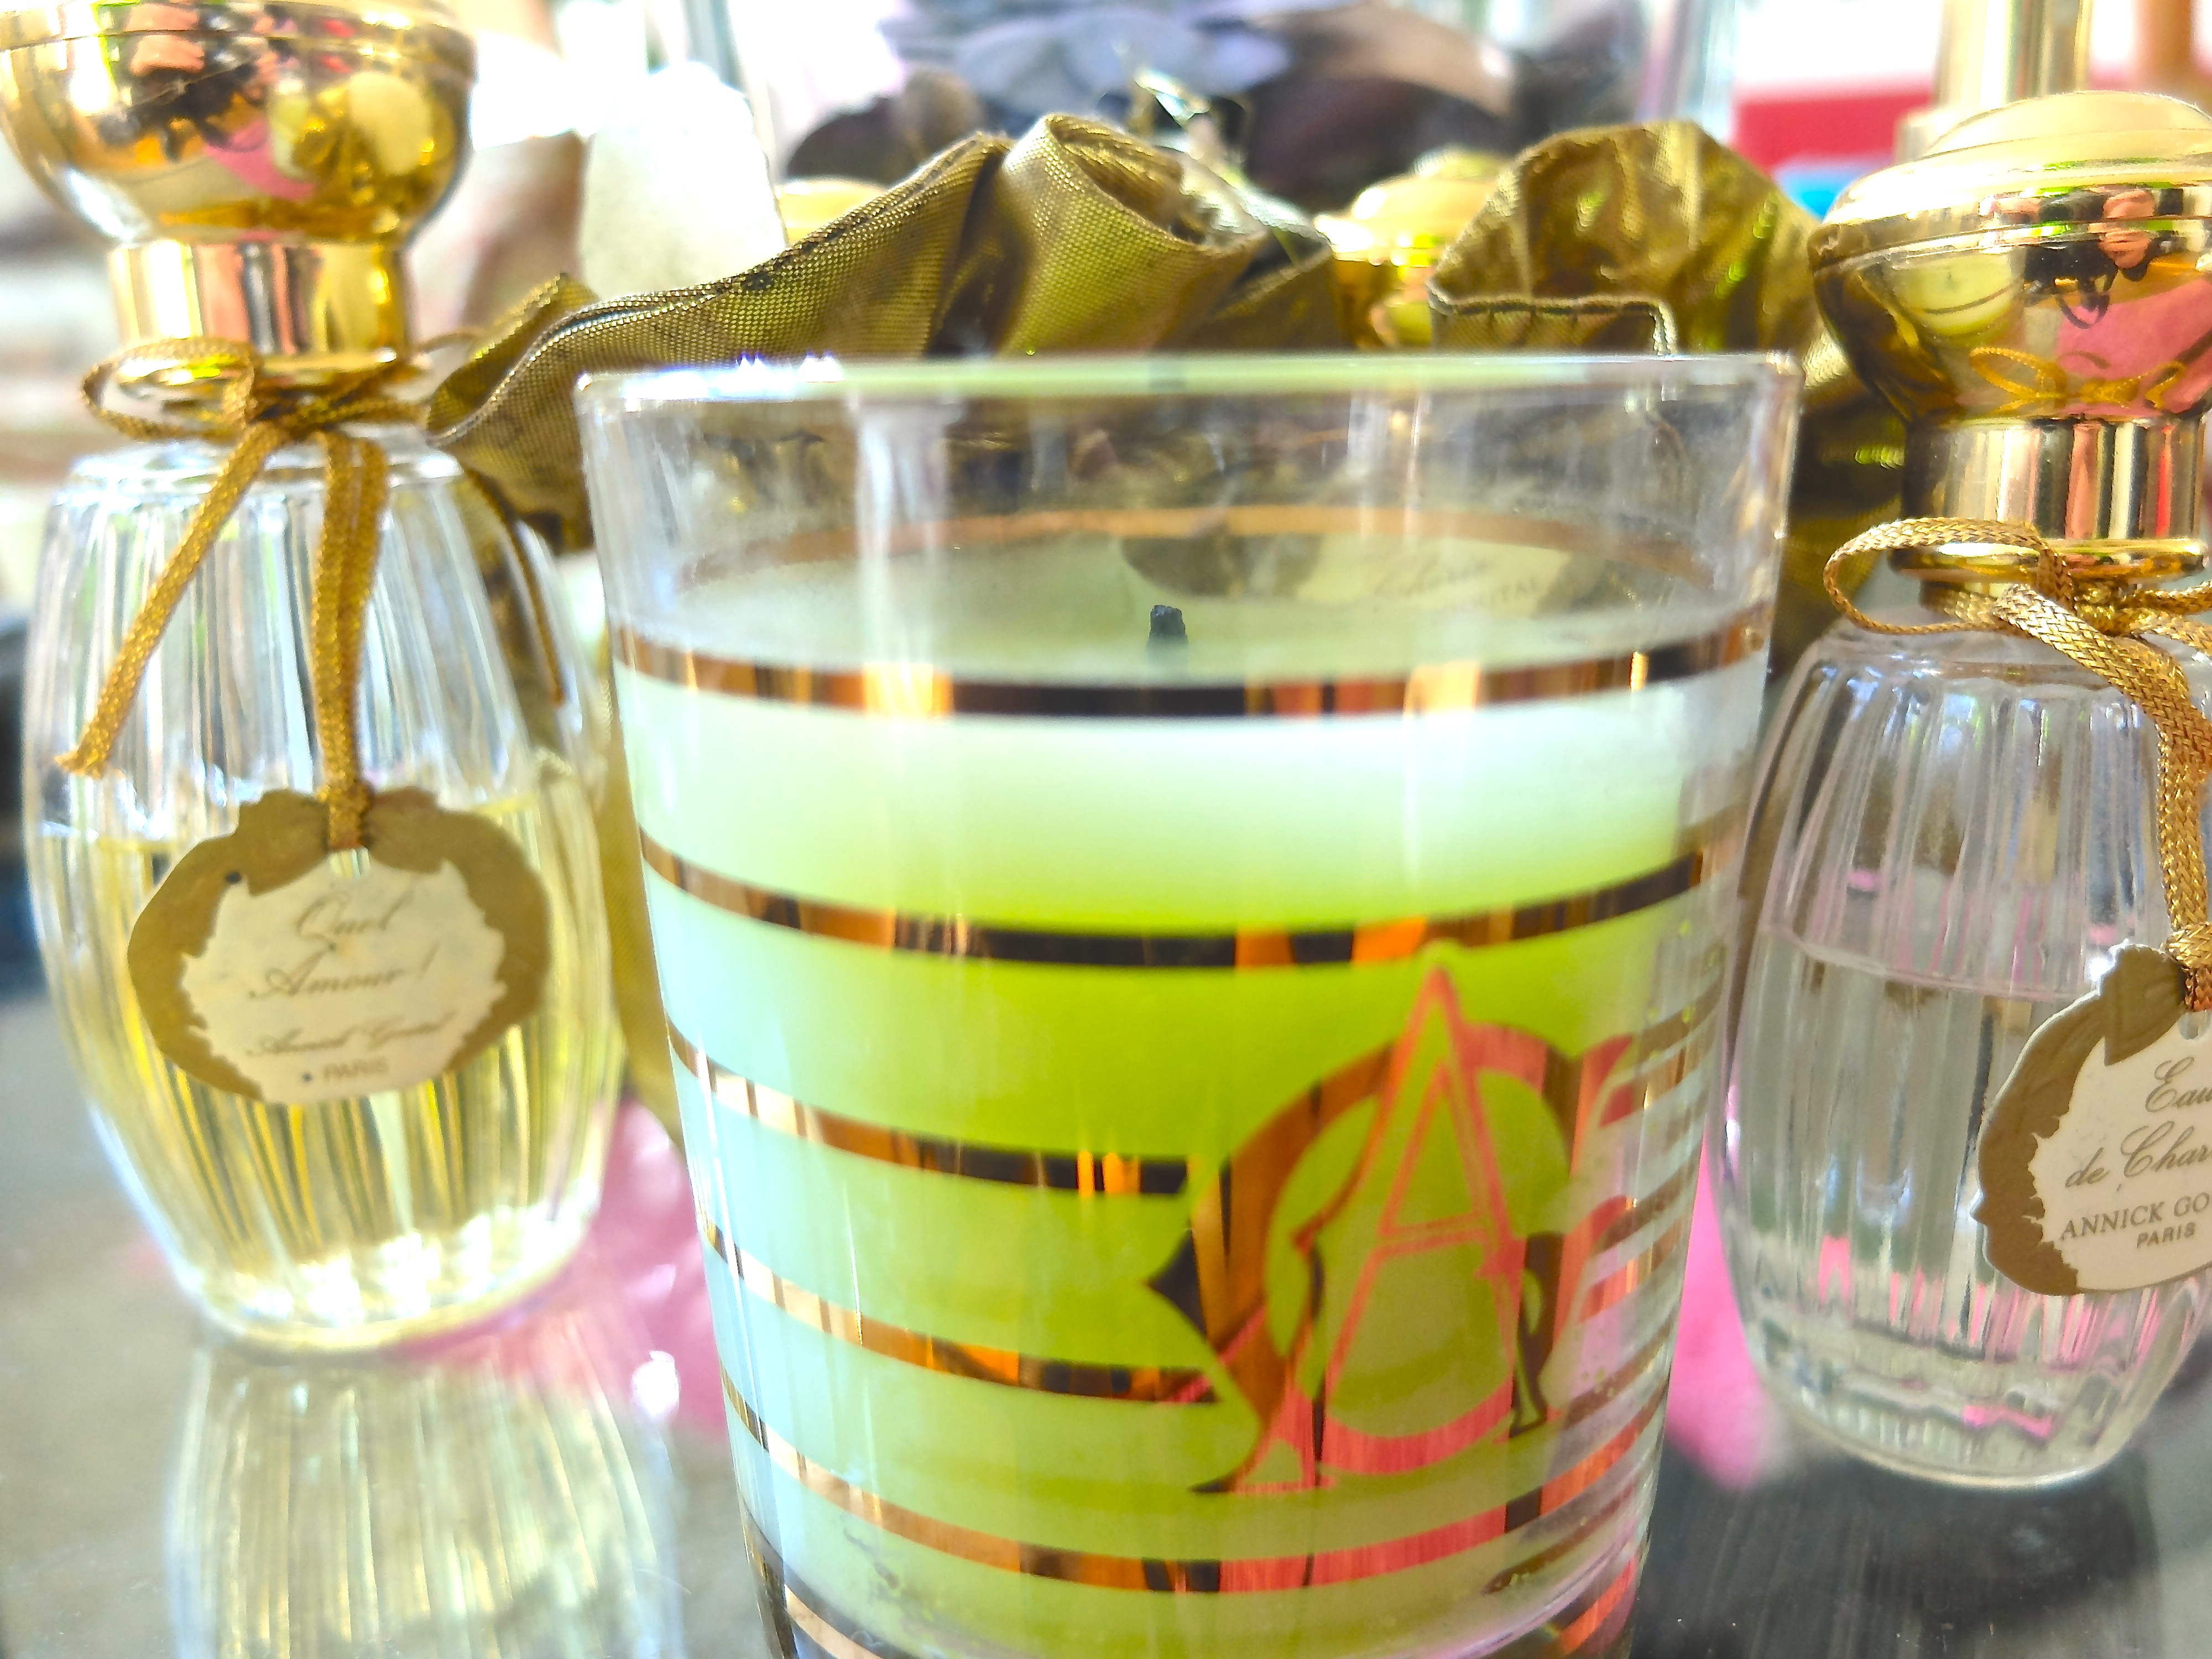 Bougie Annick Goutal